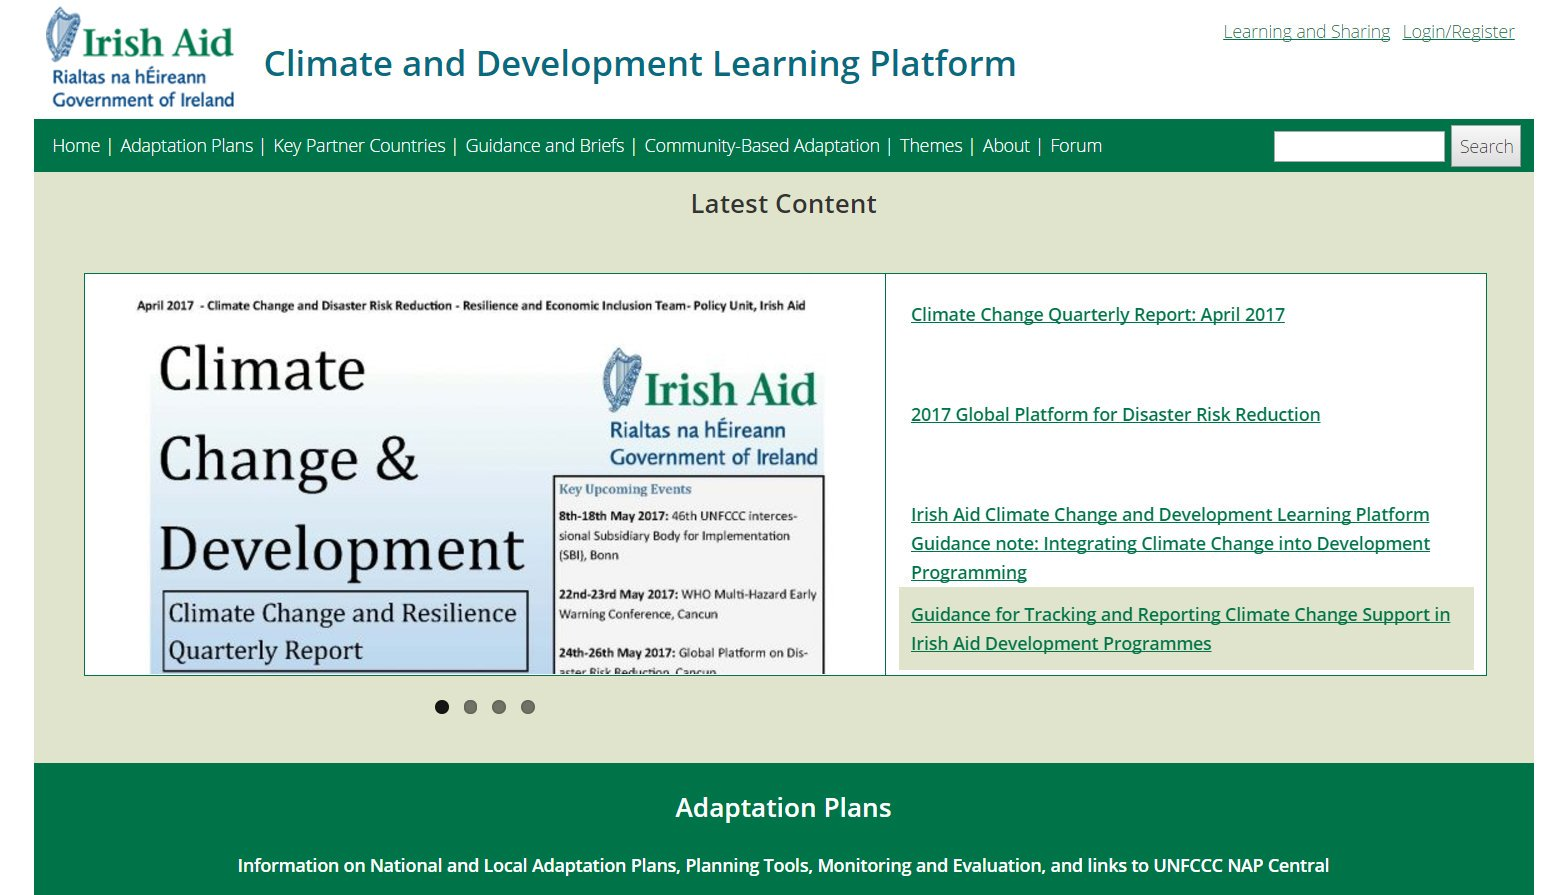 This includes highlighting a learning platform from @Irish_Aid with IIED. Now publicly available! https://t.co/ApGXyWzUgO #CBA11 #NAPexpo https://t.co/AQjkir53M7